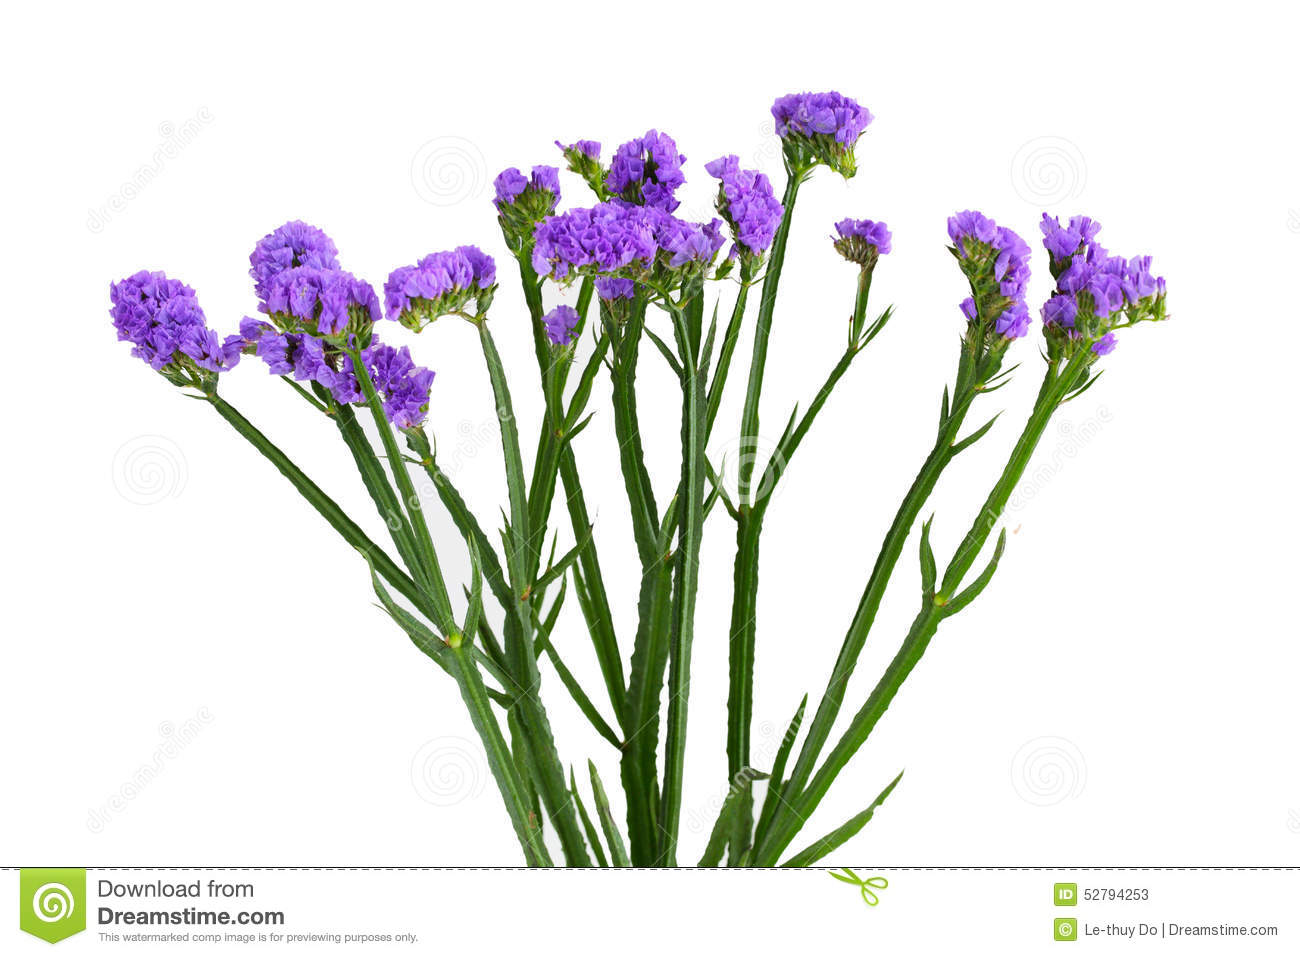 Limonium sinuatum Statice Salem flower isolated on white background.